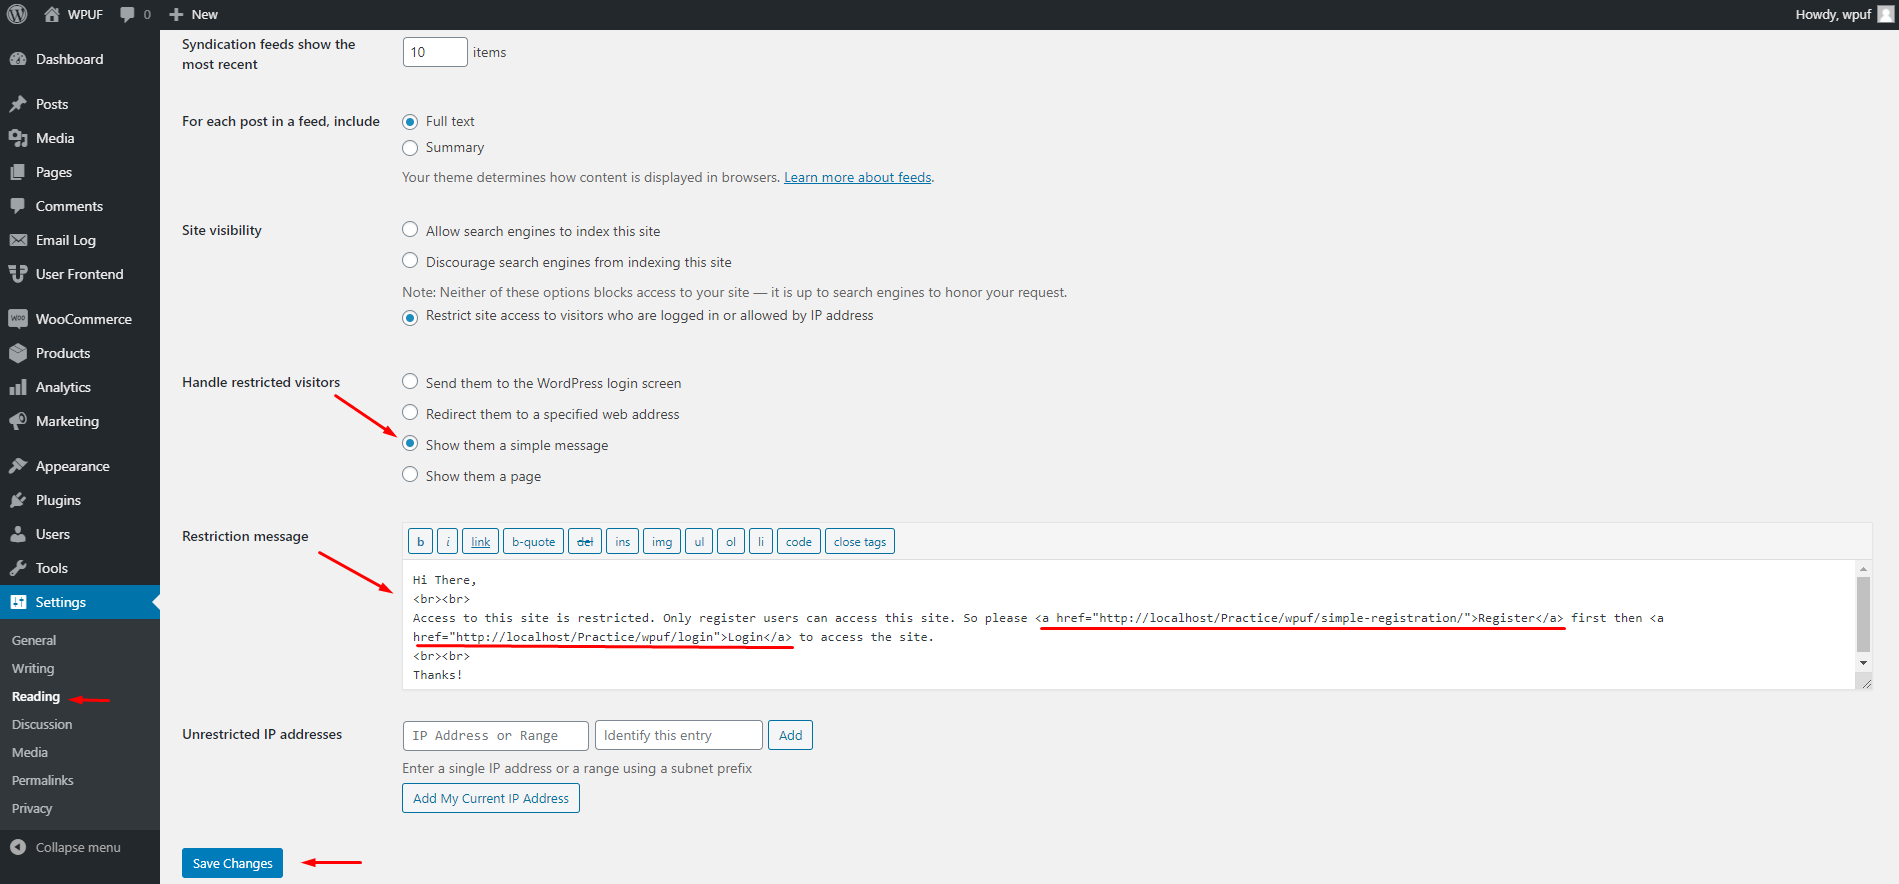 How to restrict the entire WordPress site by excluding a few essential pages 3